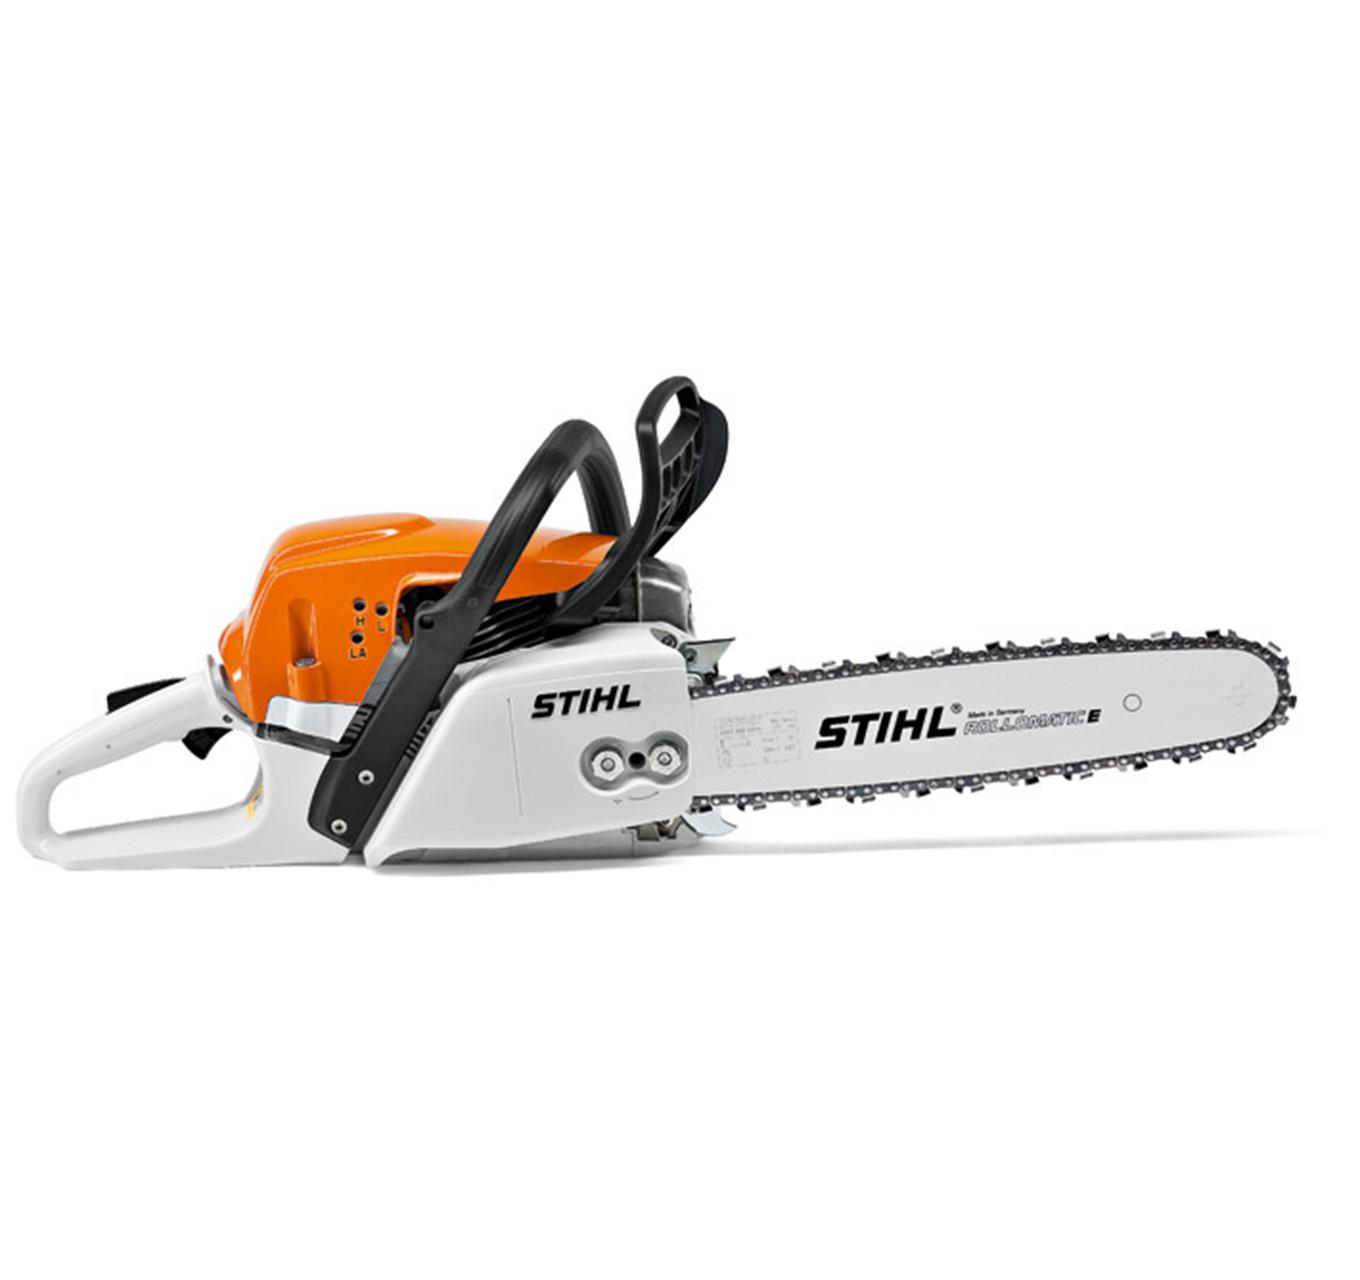 MS 271 Chainsaw 18